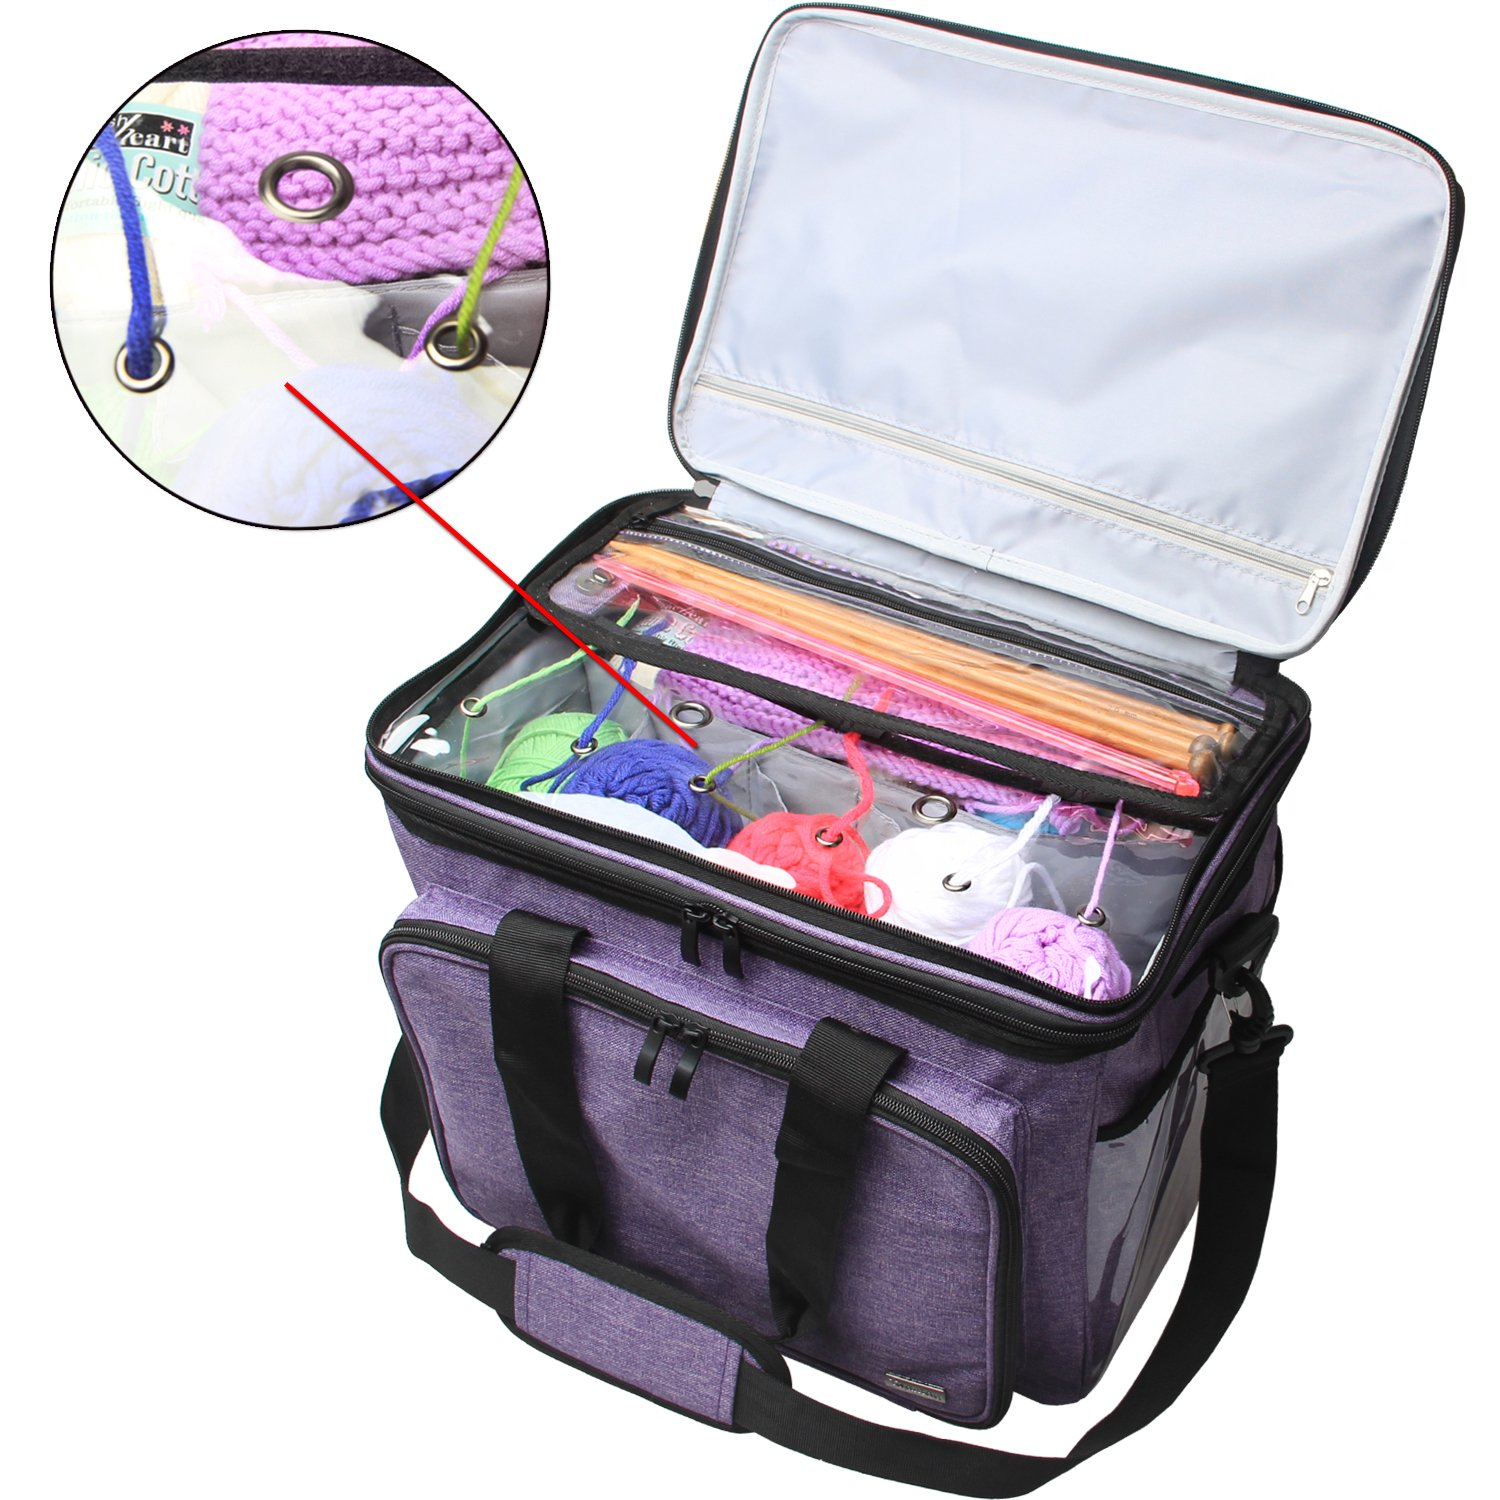 Teamoy Knitting Bag, Yarn Tote Organizer with Cover and Inner Divider (Sewn to Bottom) for Crochet Hooks, Knitting Needles(up to 14''), Project and Supplies, Purple(No Accessories Included) by Teamoy (Image #4)